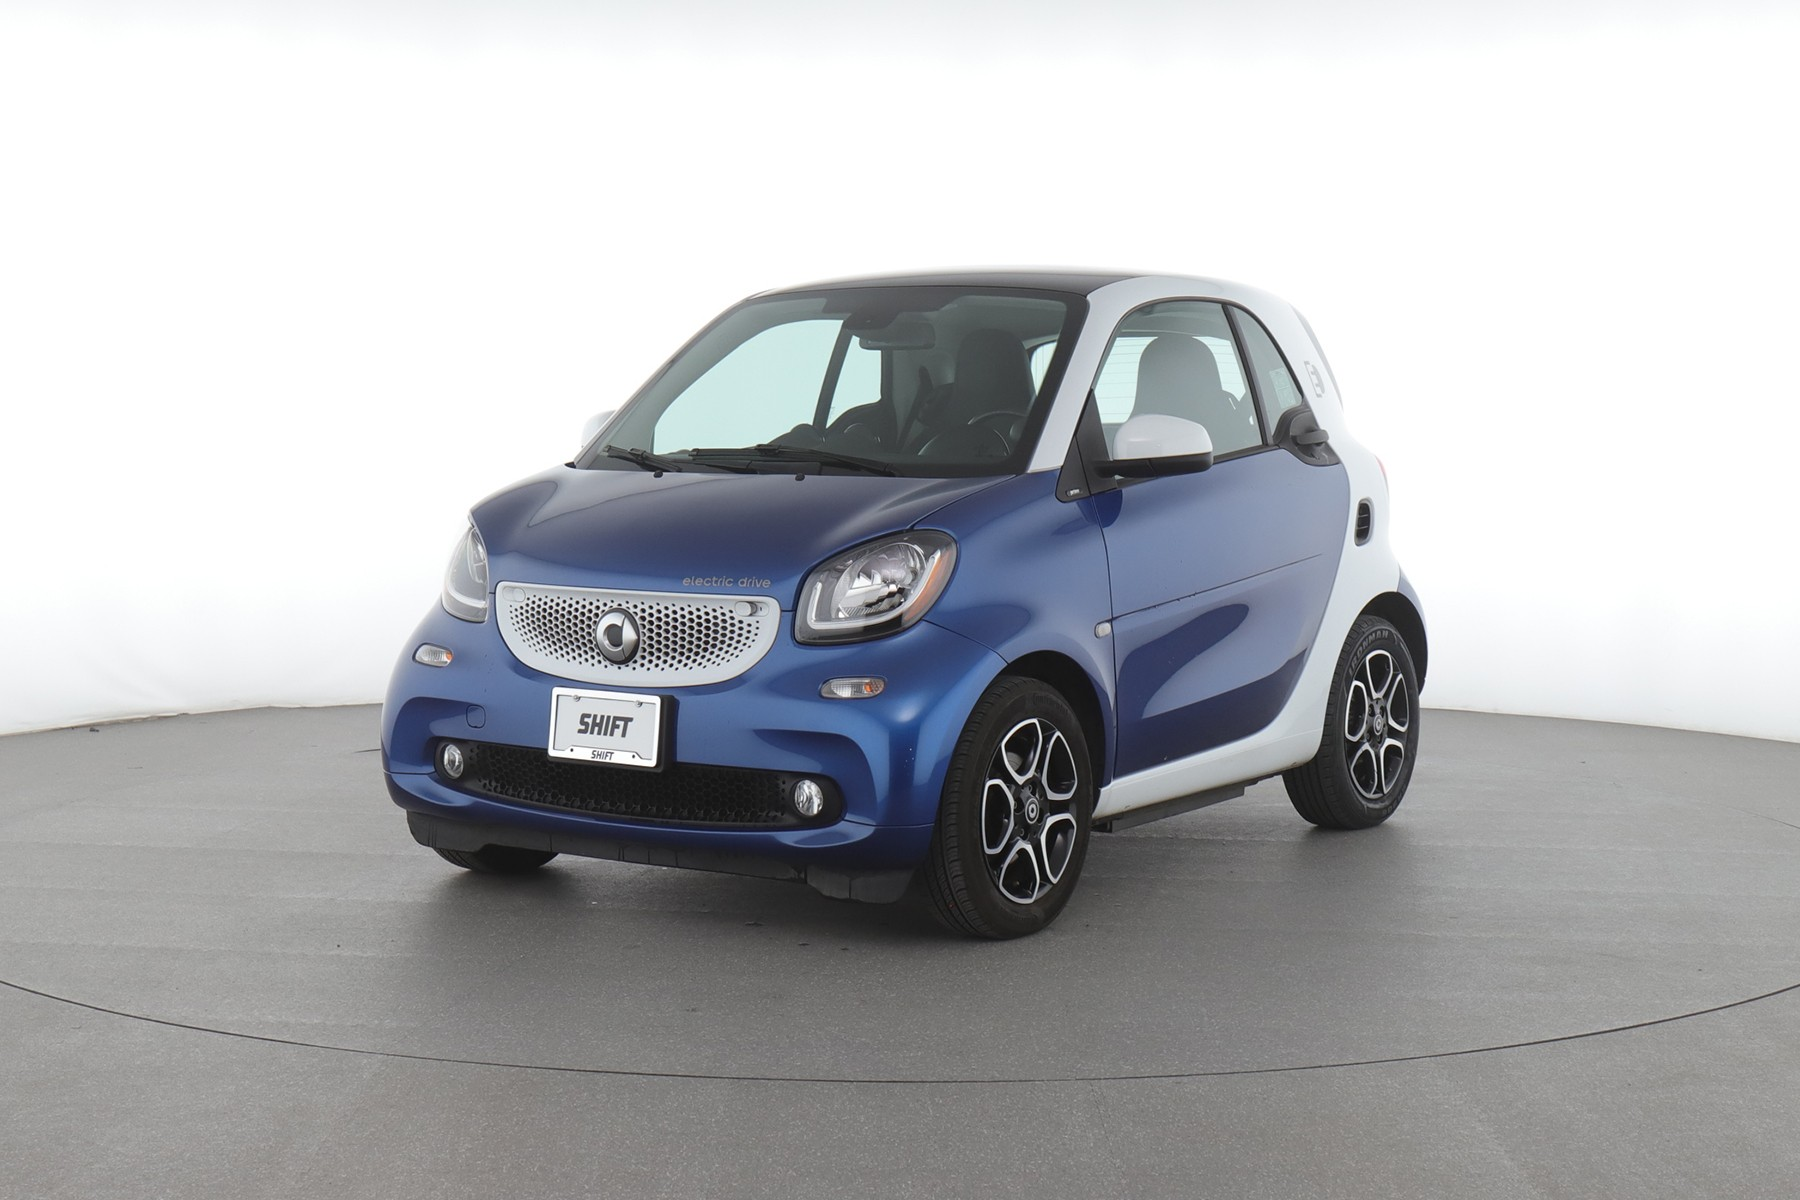 2018 Smart fortwo prime (from $11,950)